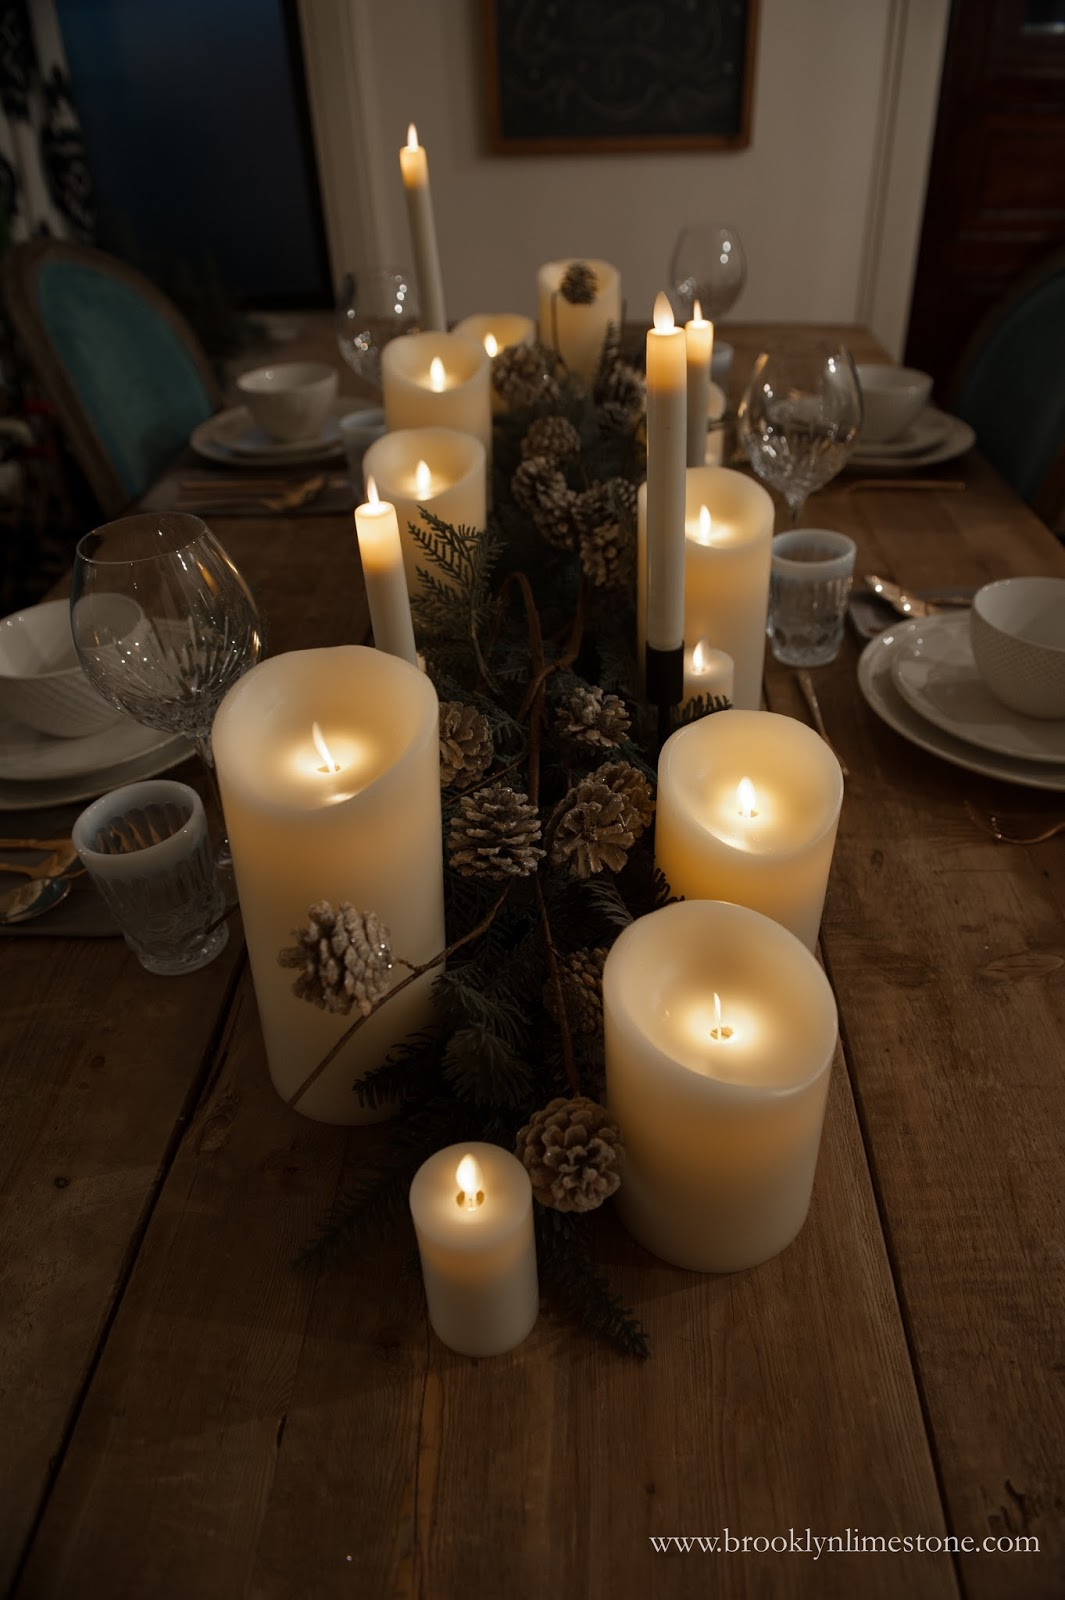 Dining table set with white place settings, flameless candles down the middle and fir branches with pine cones in between them